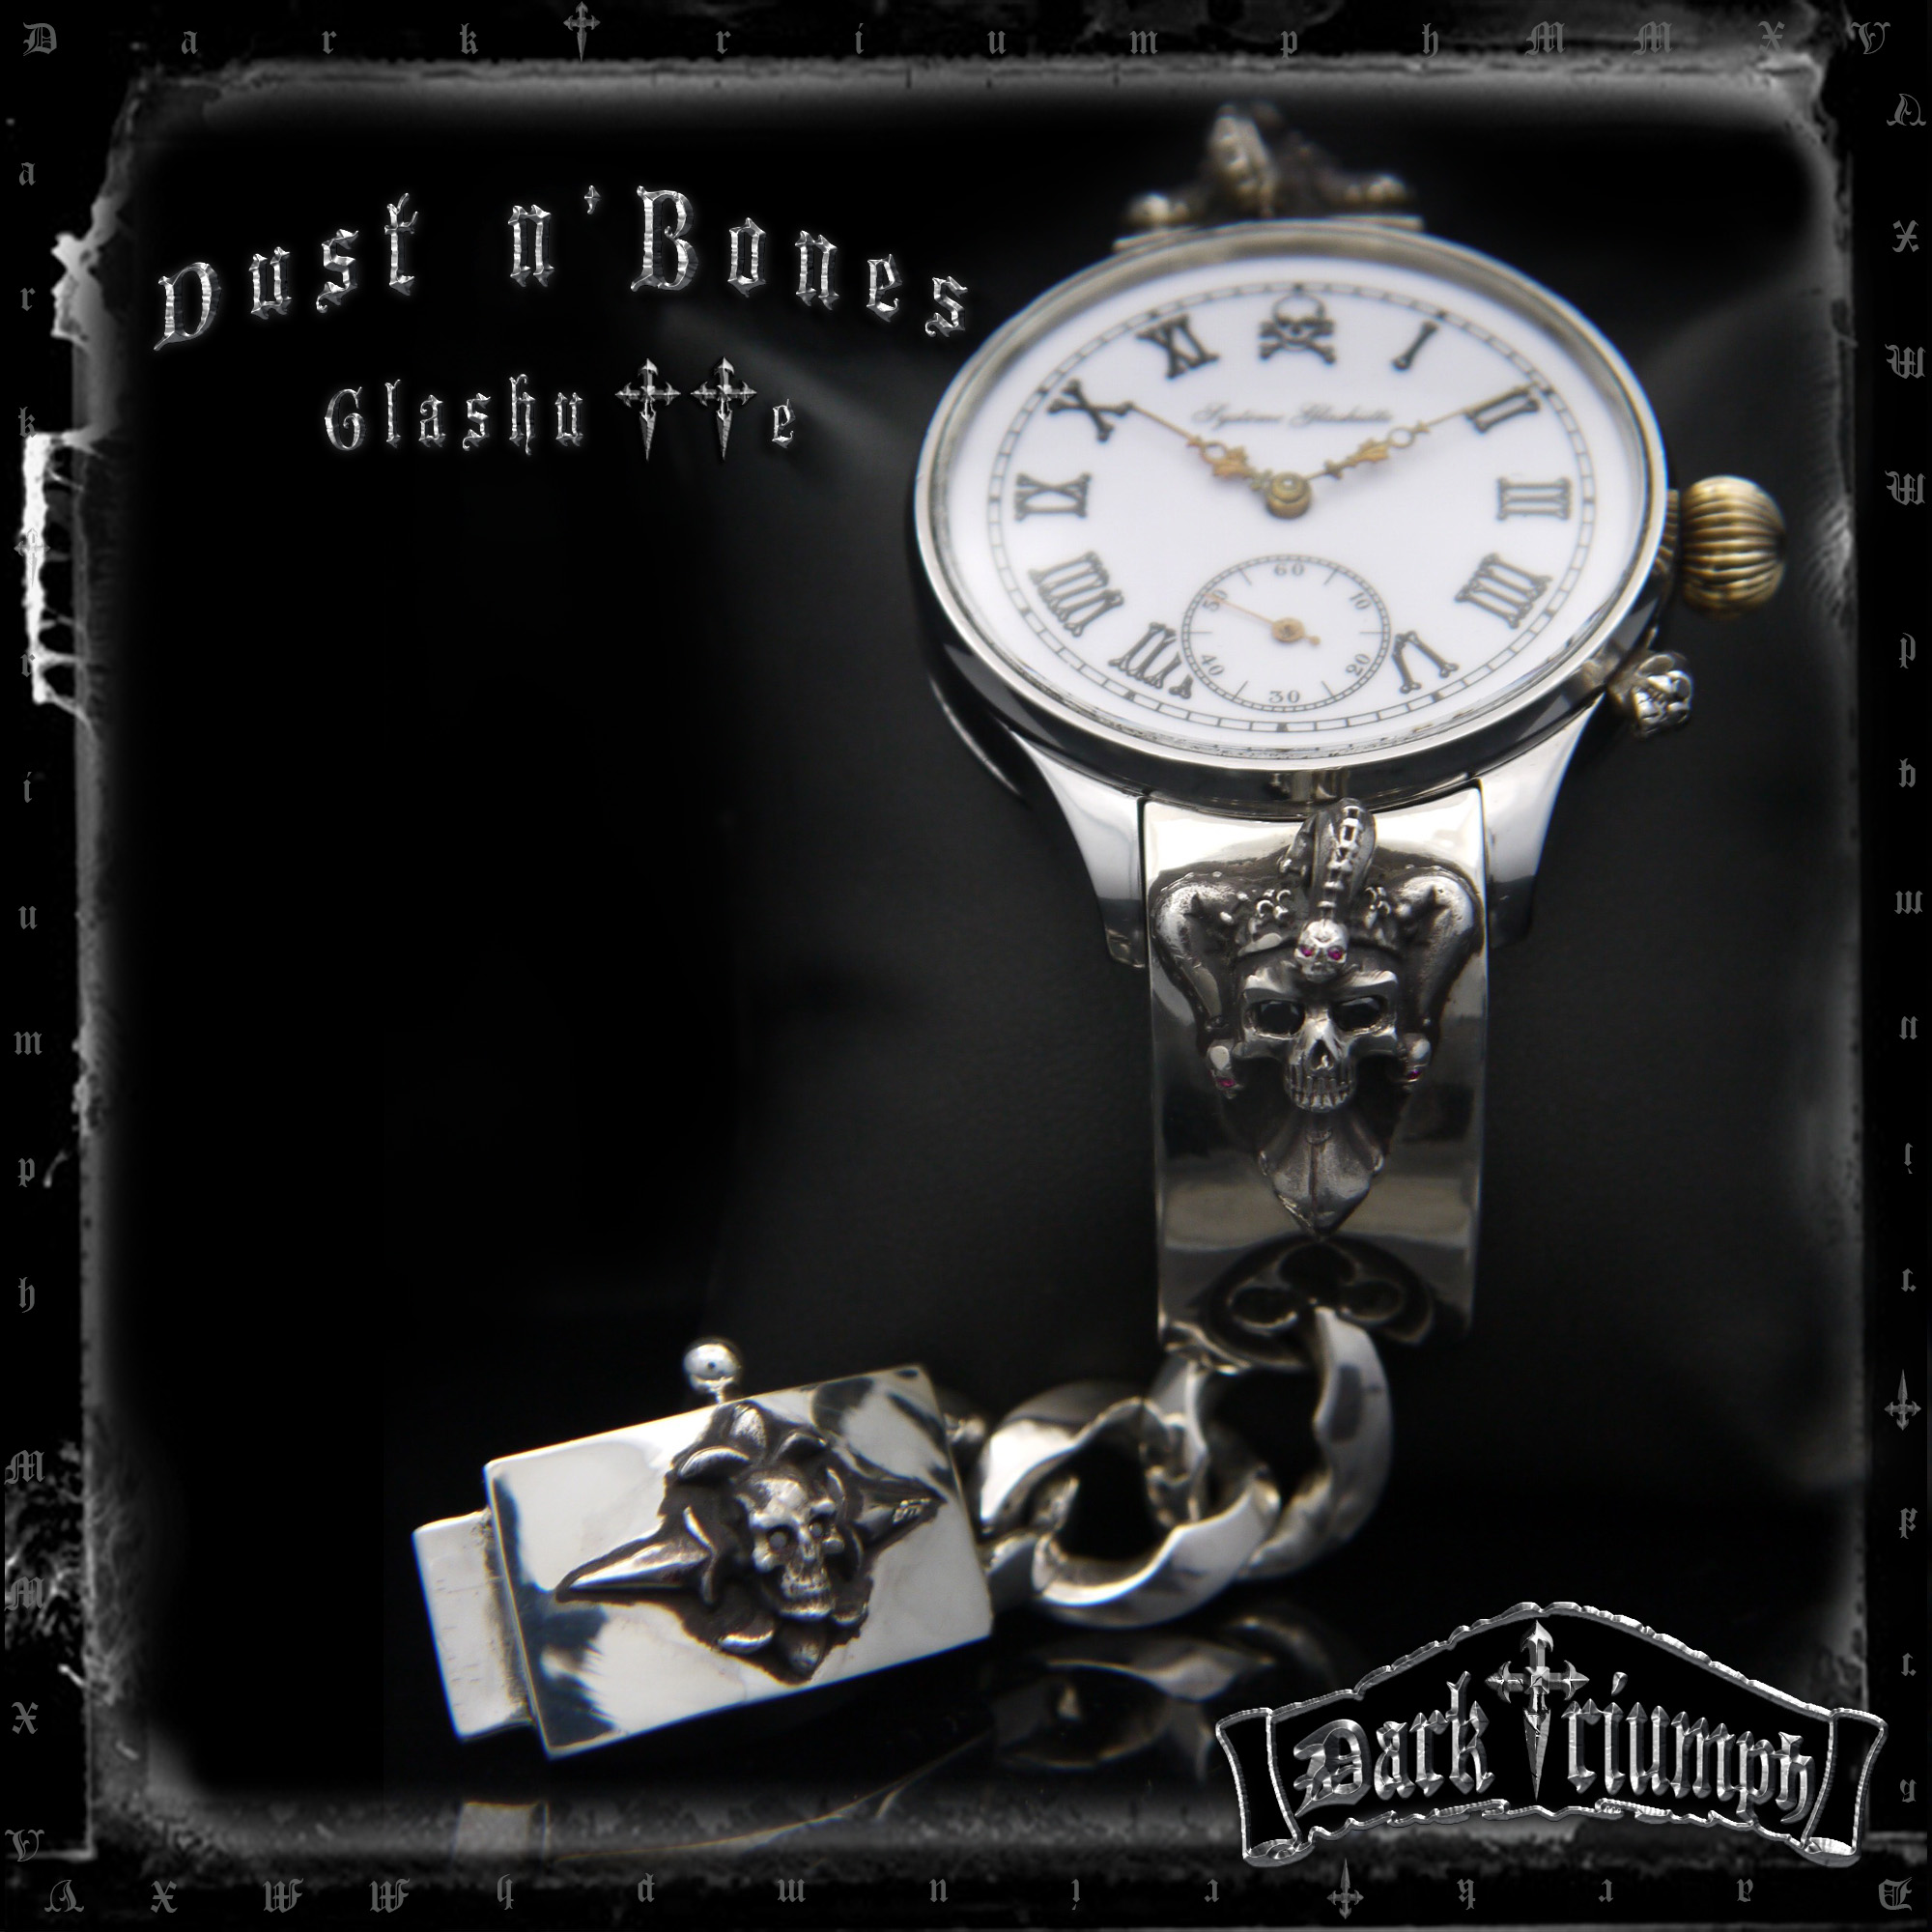 dust-n-bones-glashutte-titled.jpg